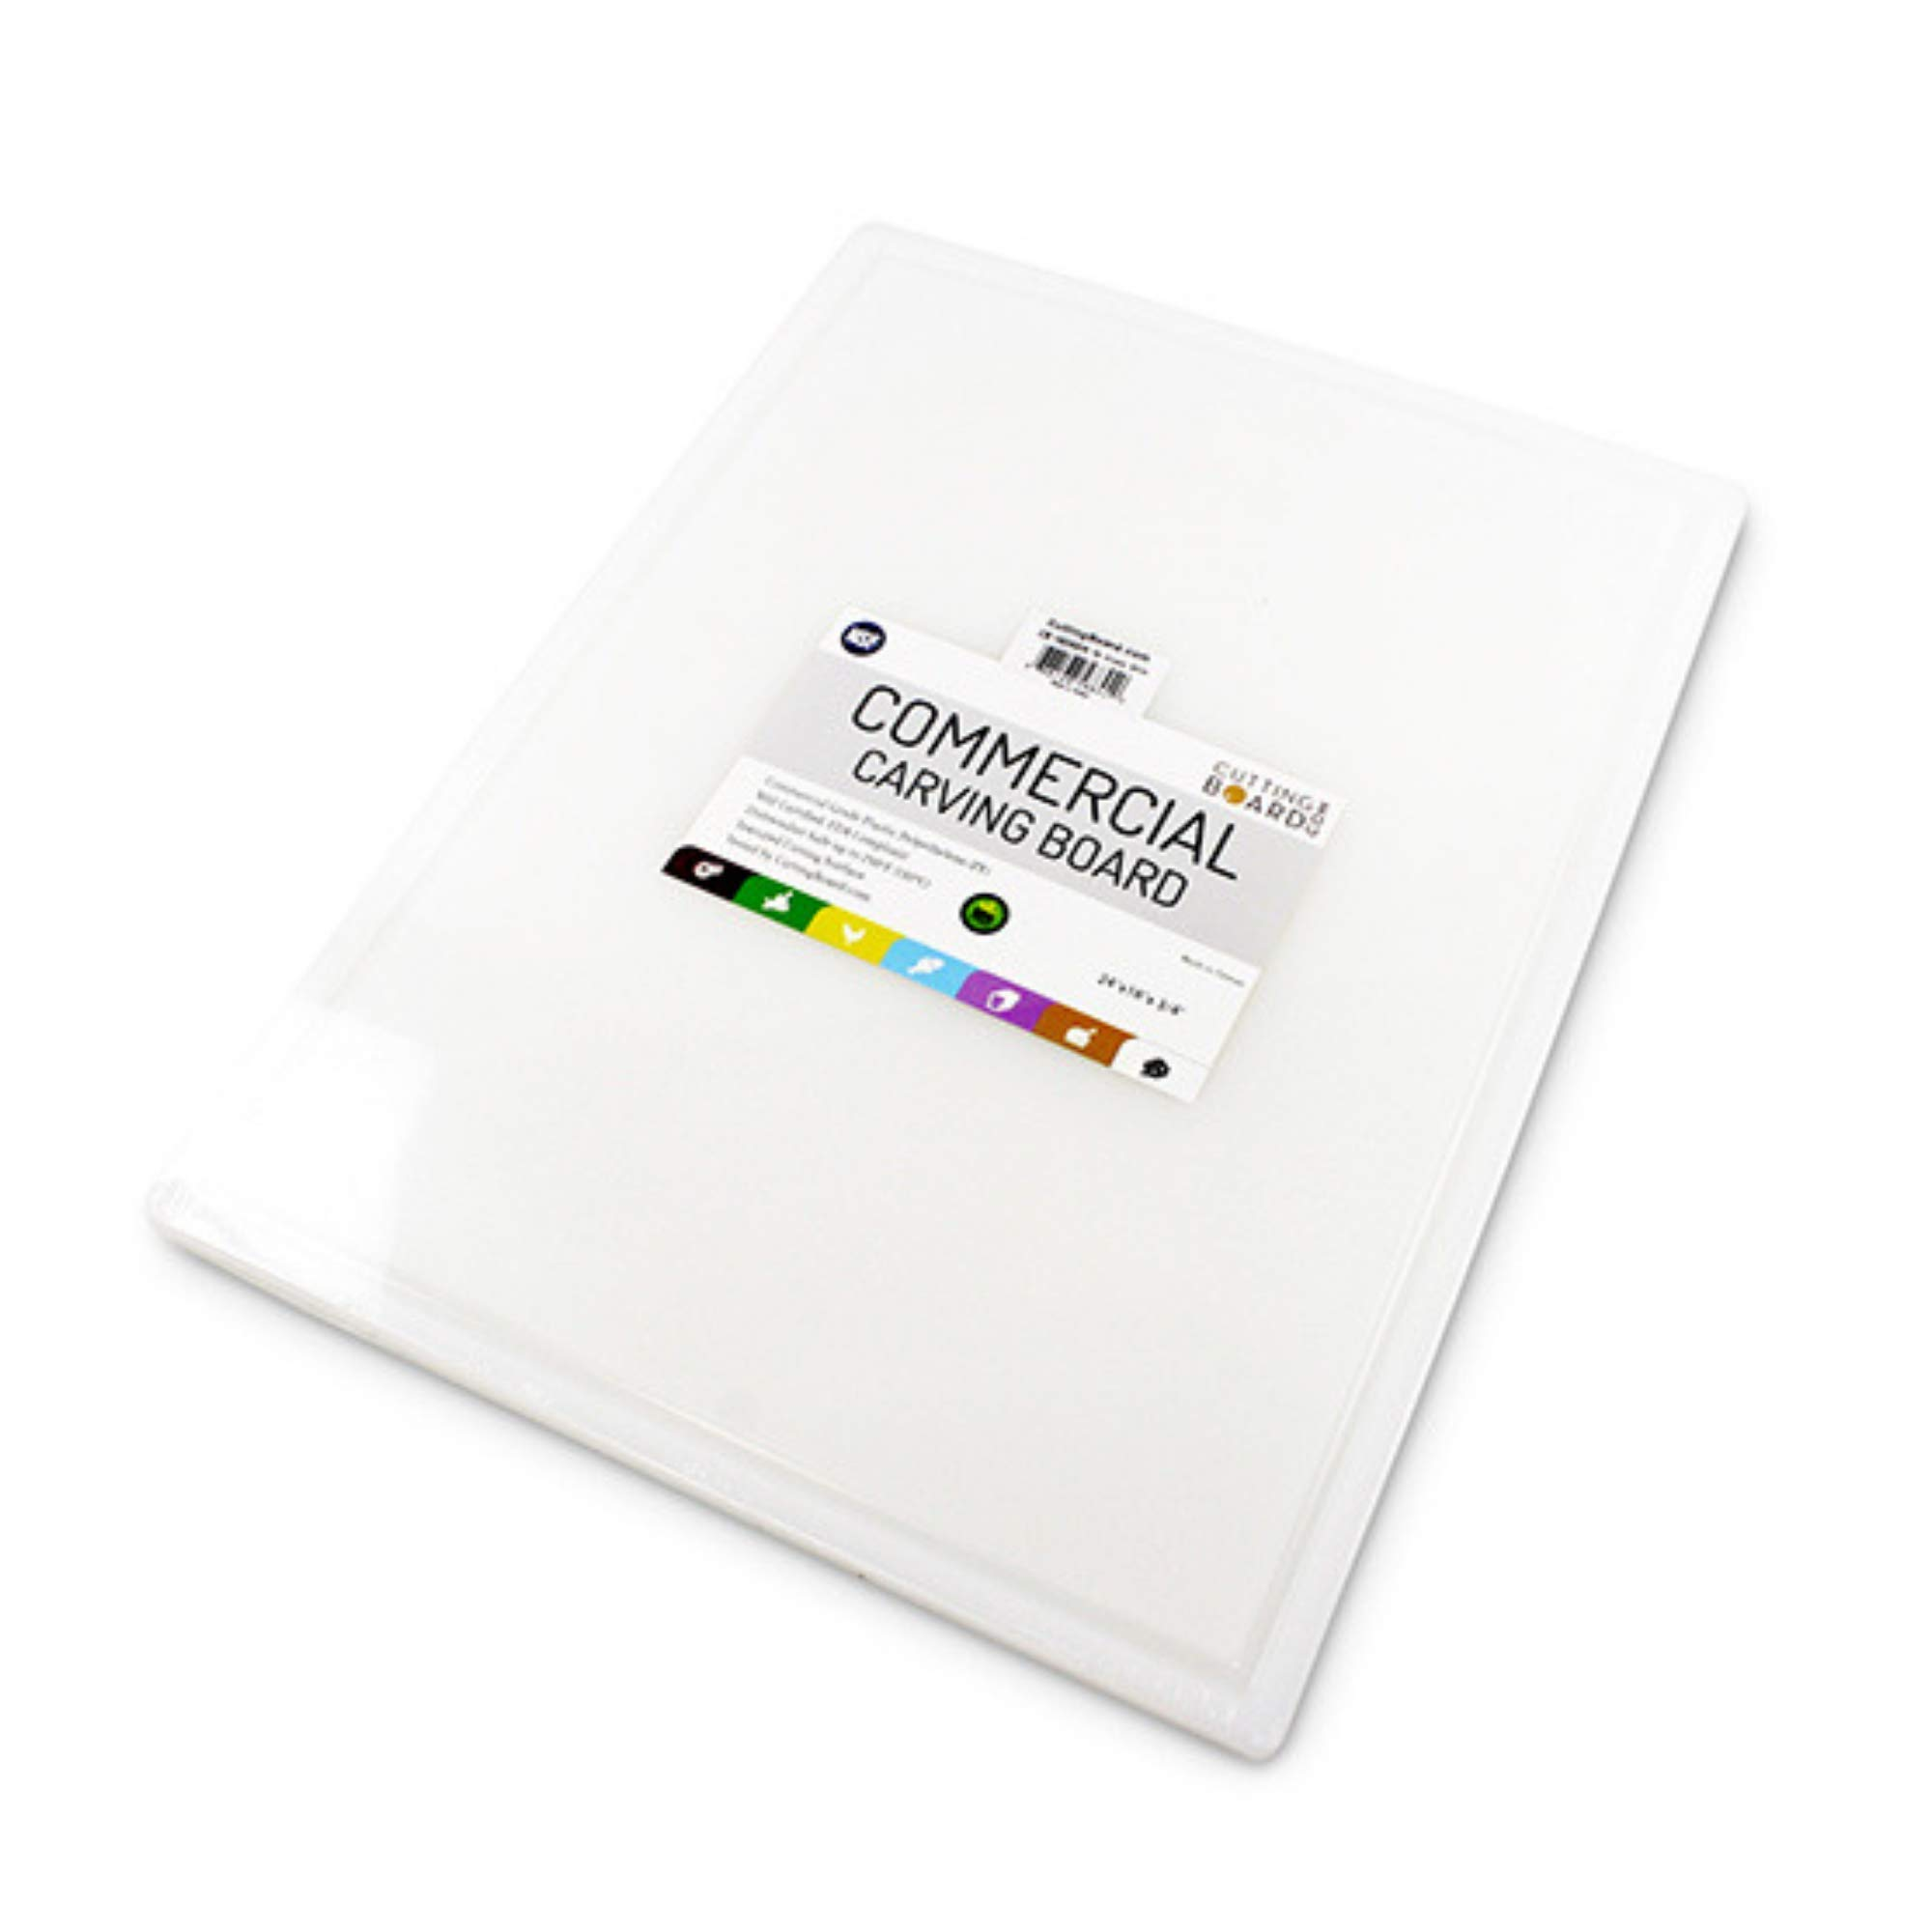 Commercial Plastic Carving Board with Groove, NSF Certified, HDPE Poly, 24 x 18 x 0.75 Inch, White by Thirteen Chefs